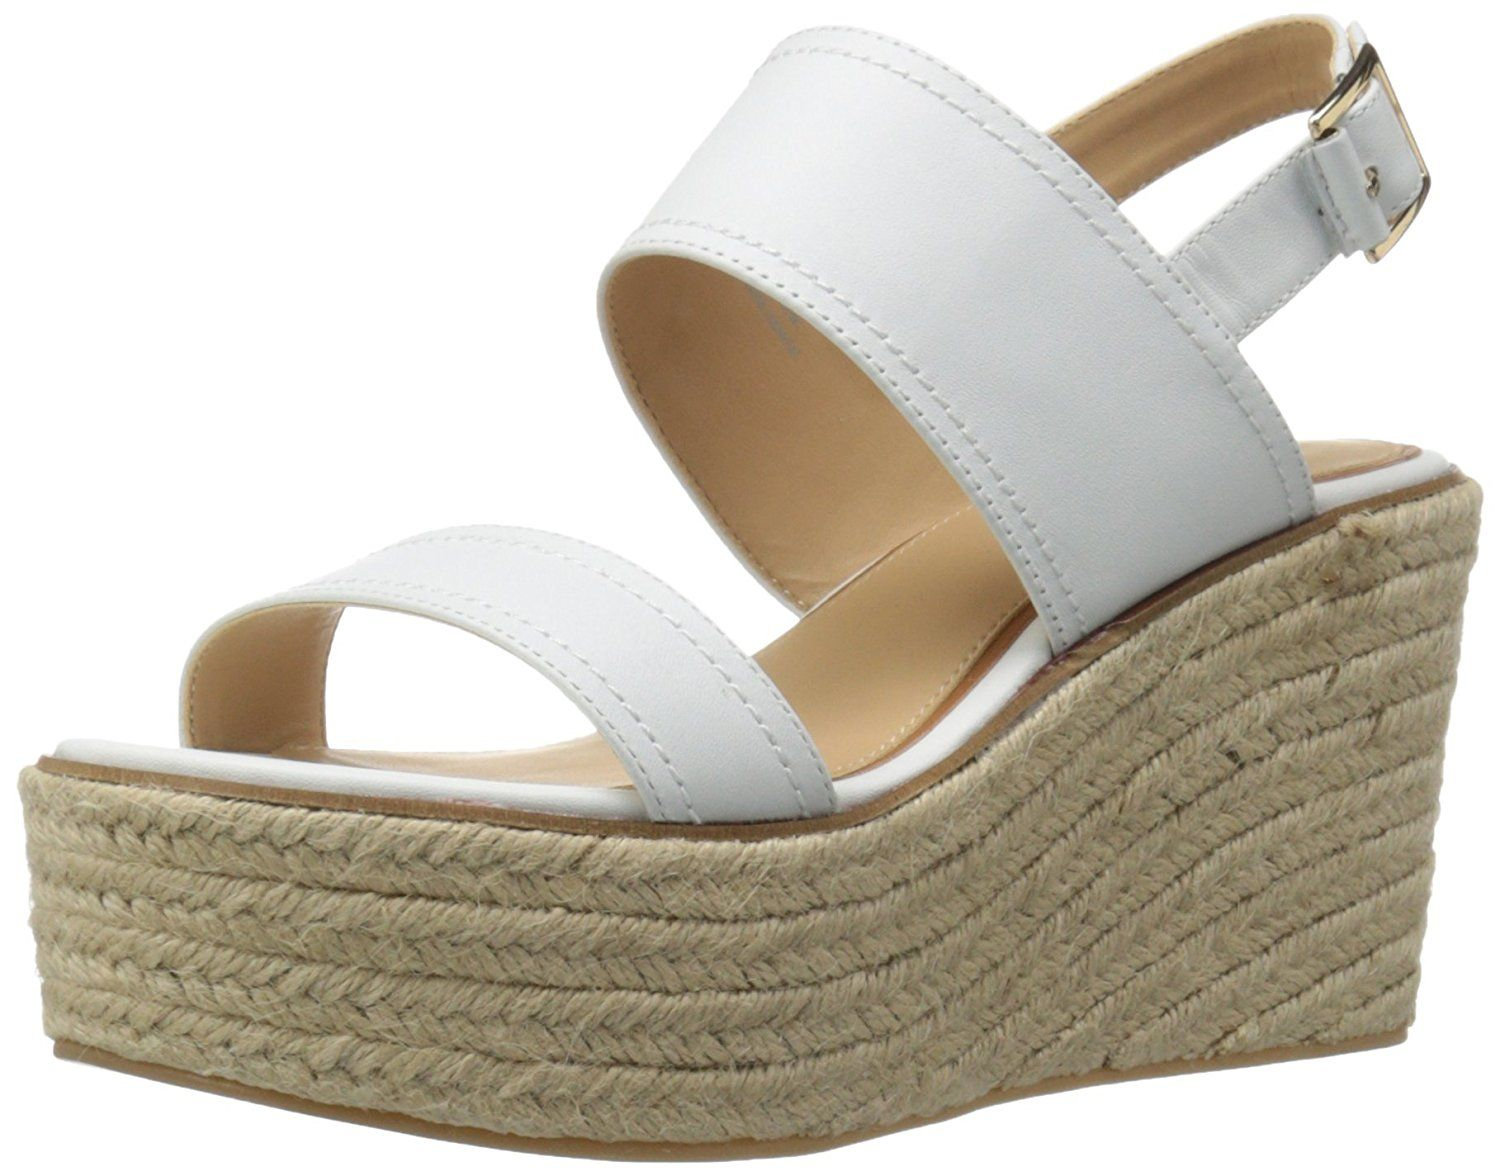 10f337a7db9 Aldo Women s Scarantino Platform Sandal   Want to know more